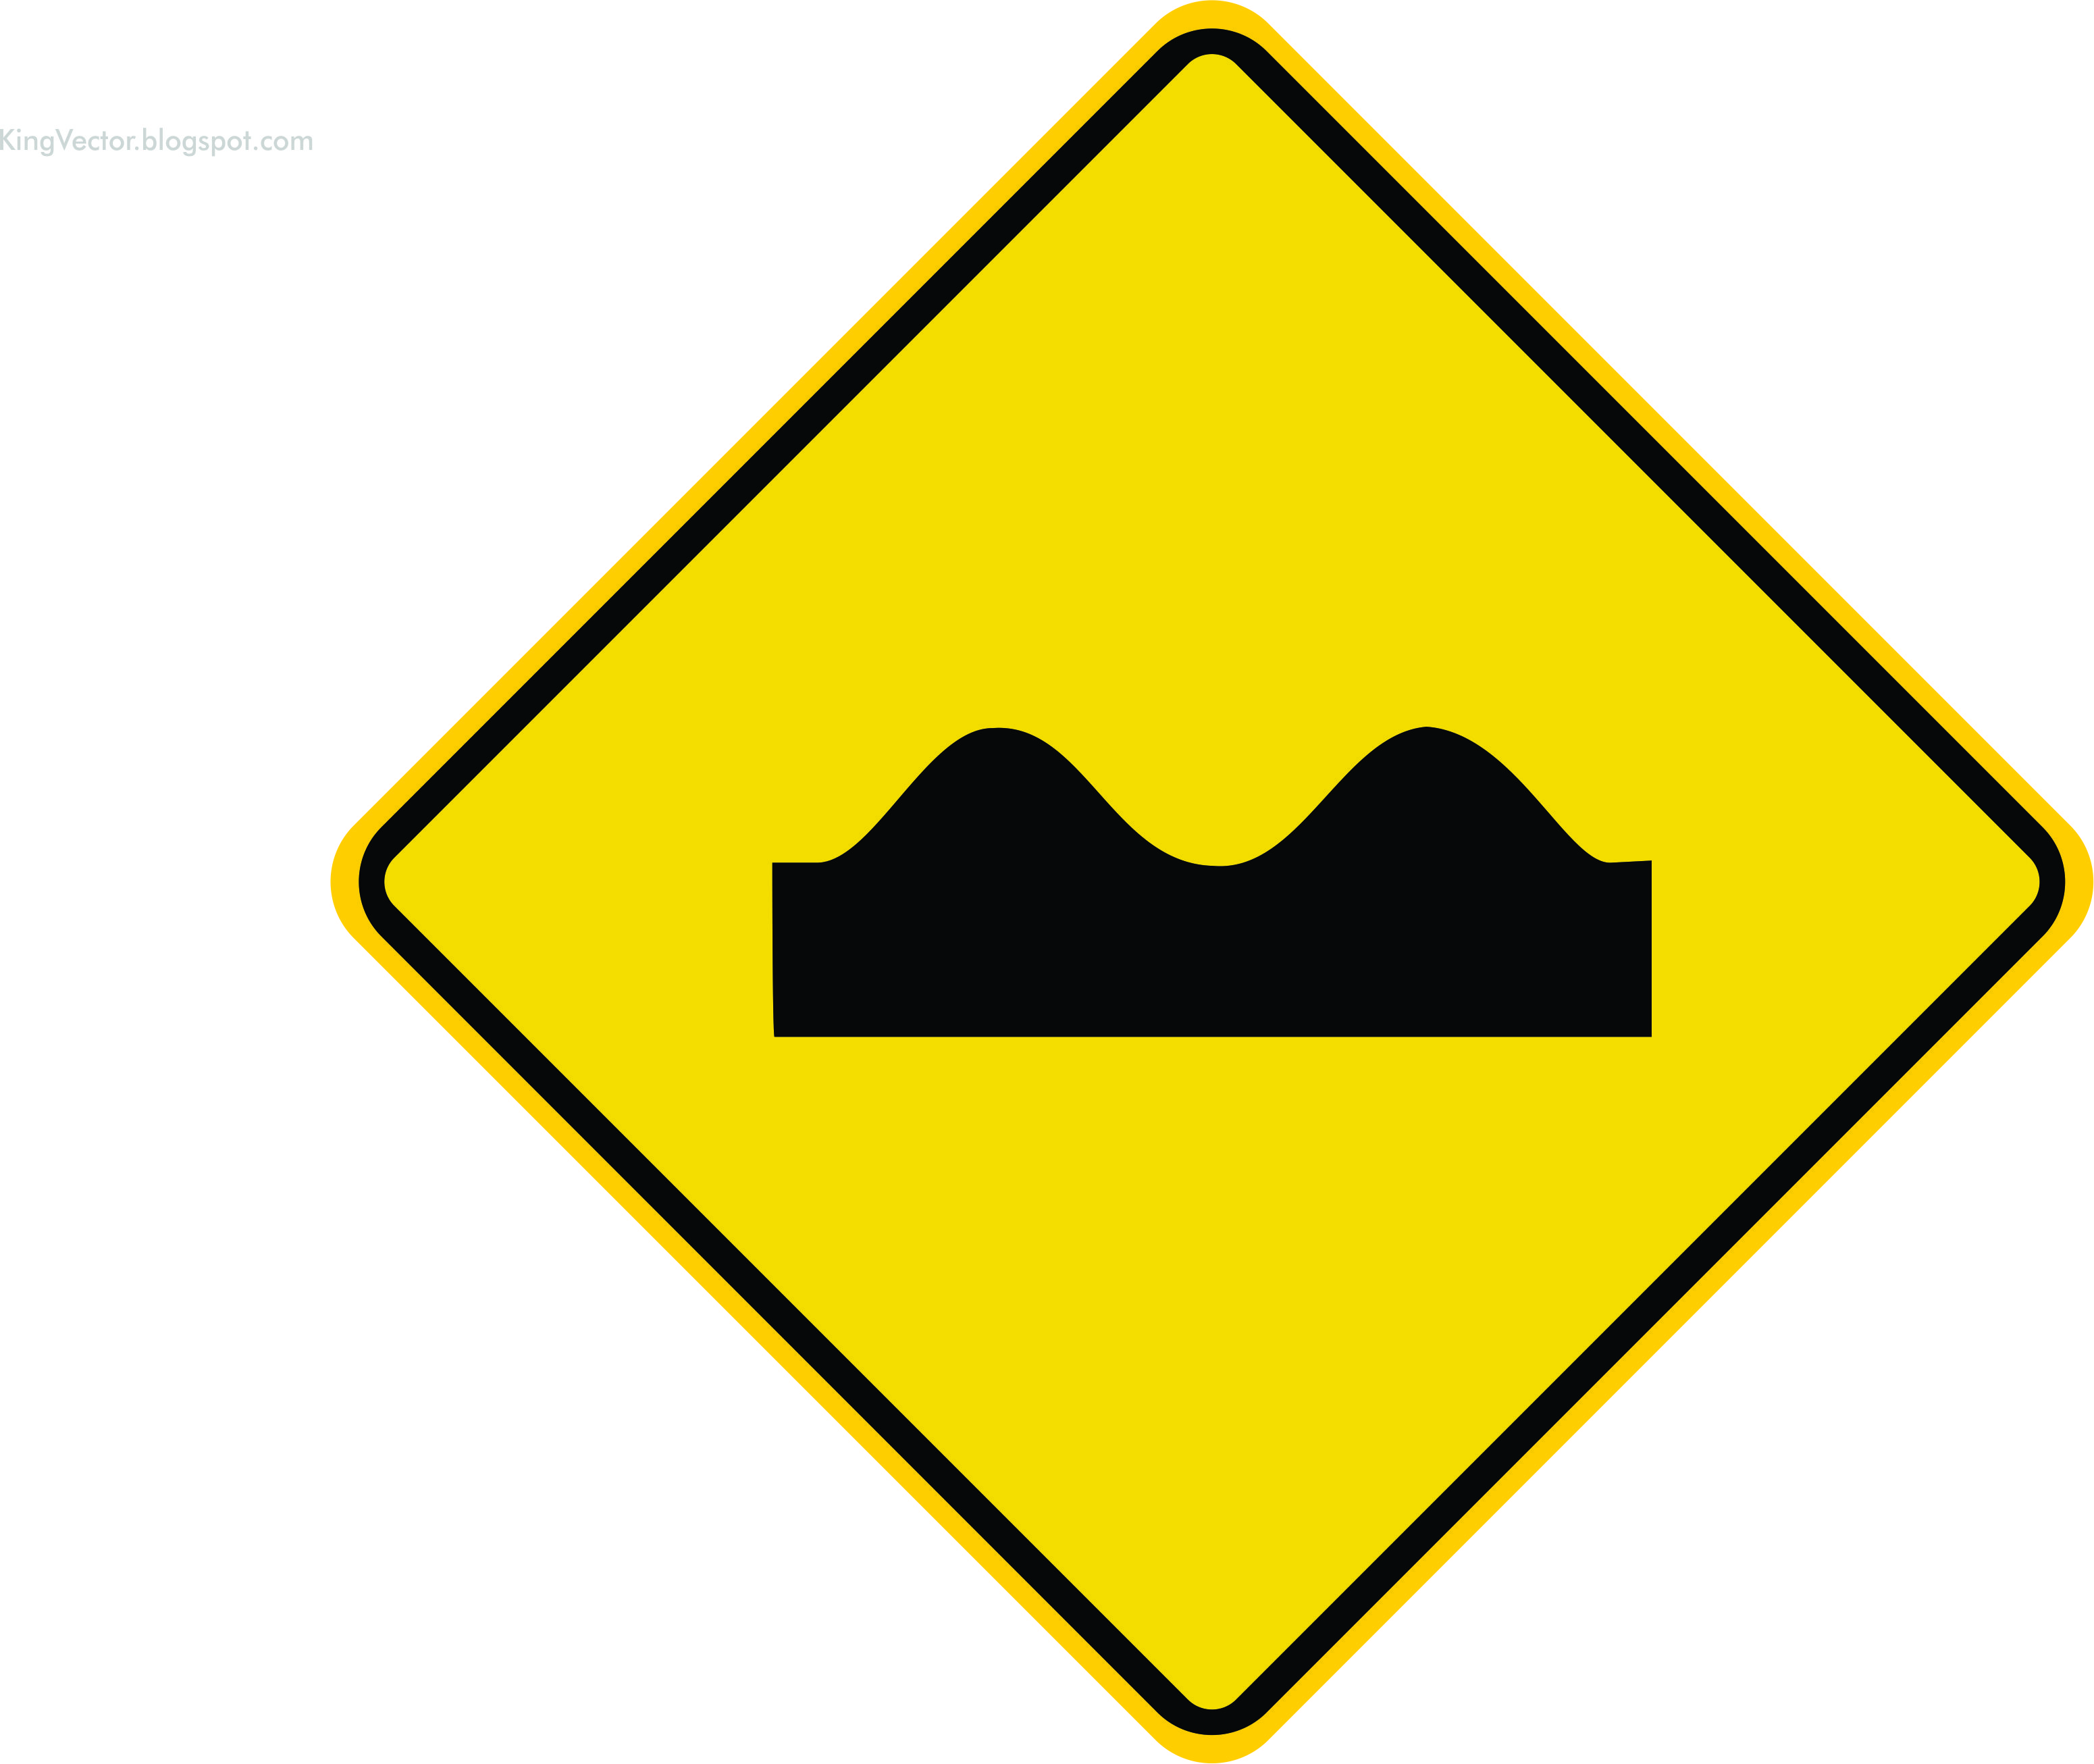 road sign logos clipart best